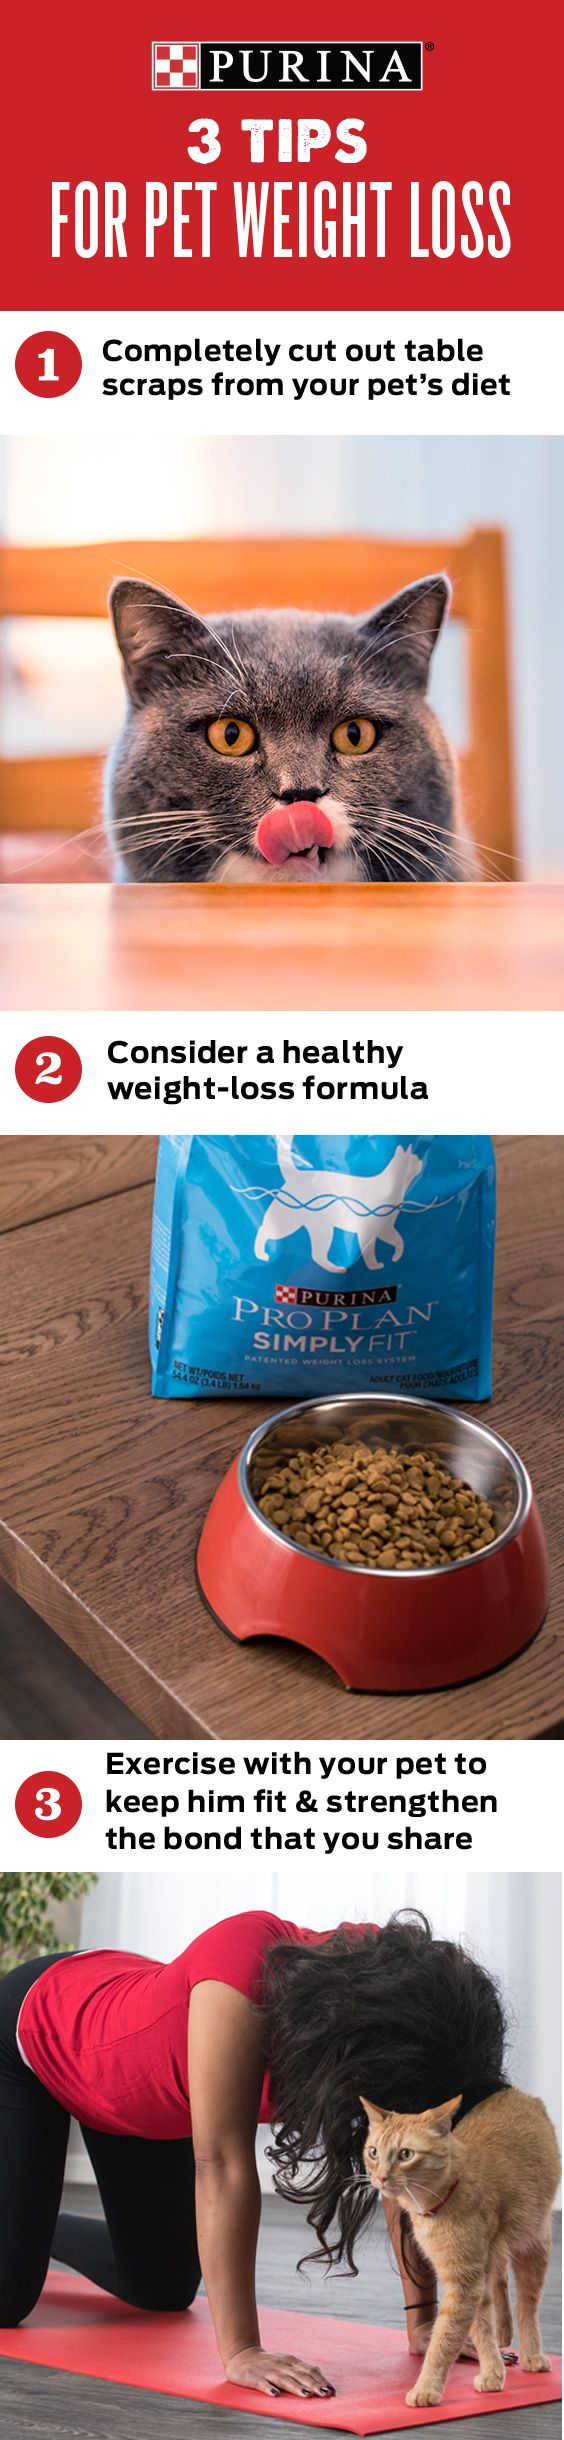 Is my cat overweight? My cat is overweight, what do I do? Find the answers to these questions & more by clicking through to Purina's article on how to know if your cat is overweight & how to help your cat lose weight. By conducting a quick body score check, re-assessing her diet & mixing up her physical activity, you can make strides in your cat's weight loss journey. A healthy life starts with a healthy weight. Learn more about helping your pet start living her best possible life at…